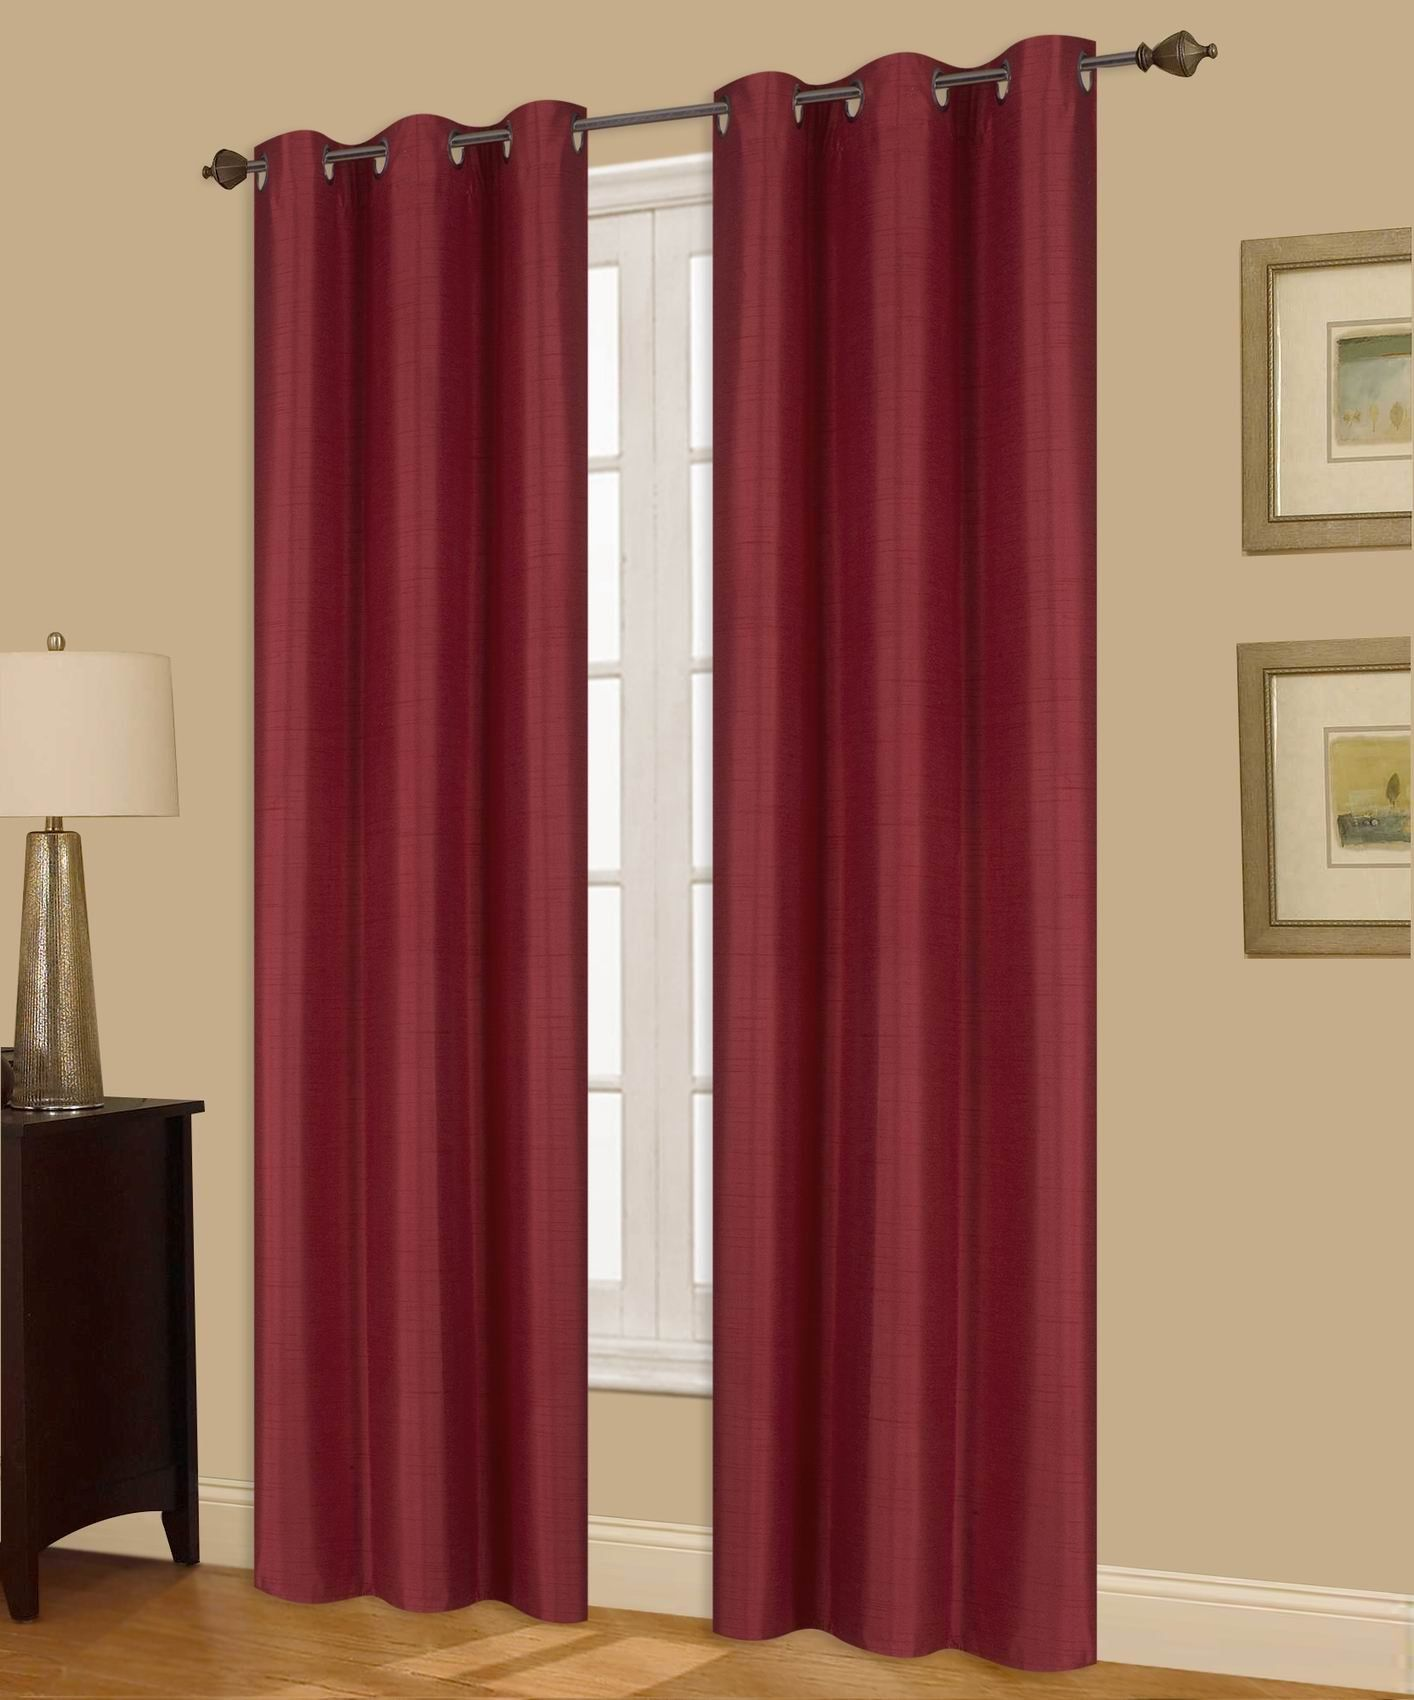 Gorgeoushomelinen A72 1 Panel Window Curtain Bronze Grommet Top Lined Foam Backing Insulated Thermal Drape Blackout Bur In 2020 Window Curtains Curtains Panel Curtains